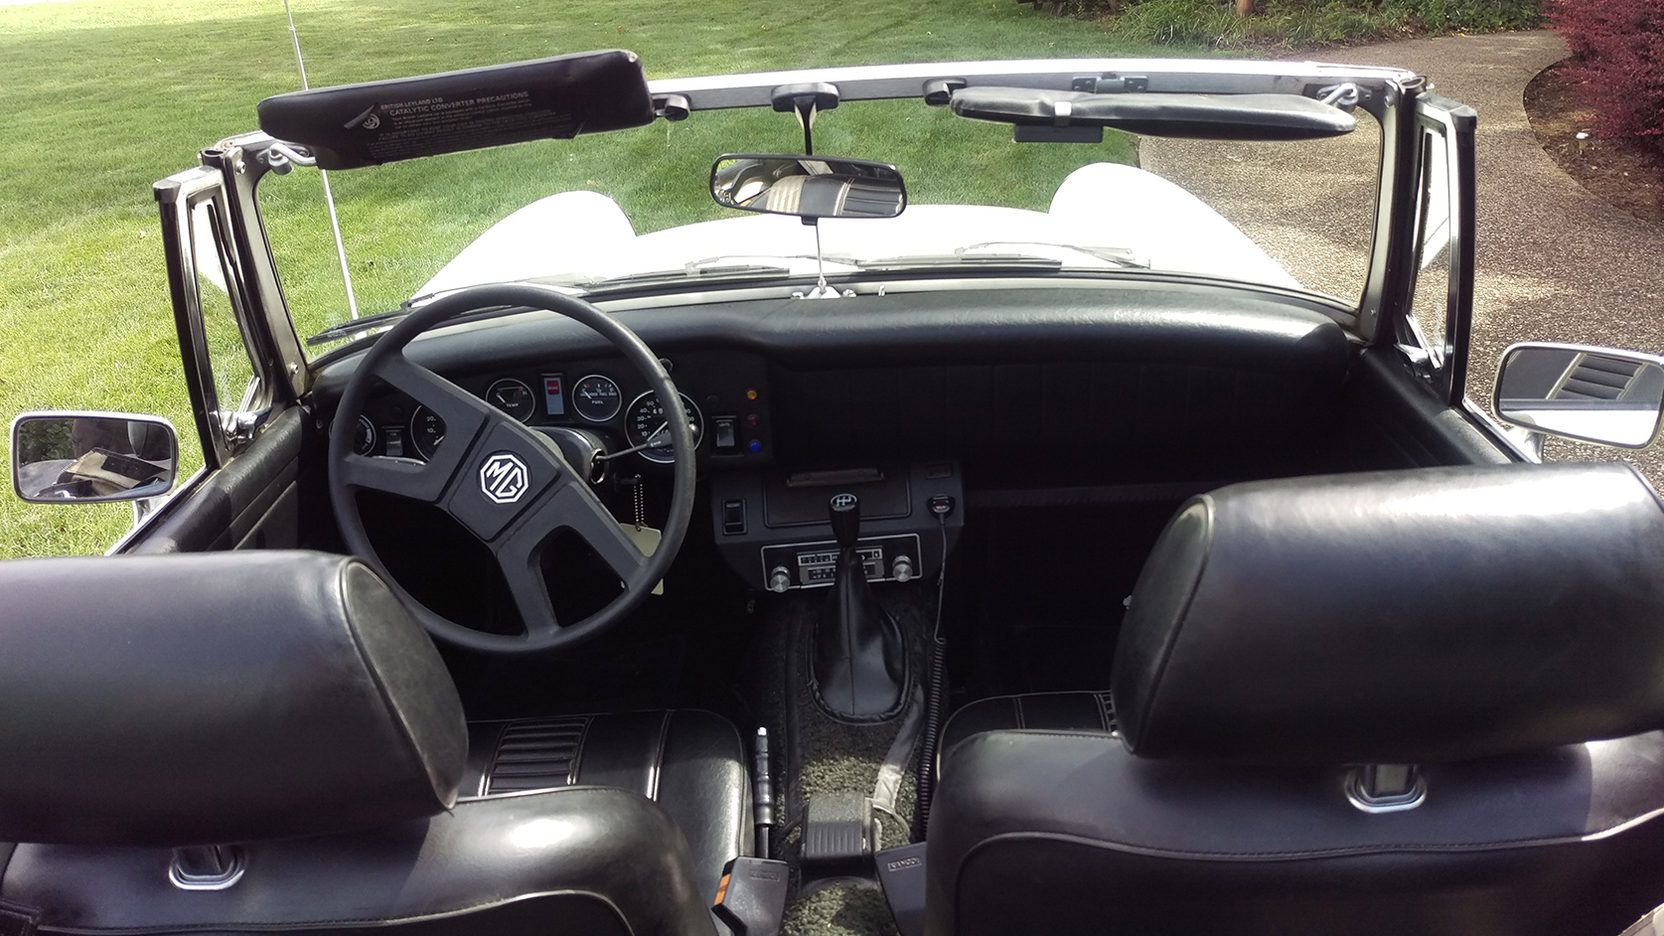 1979 MG Midget interior